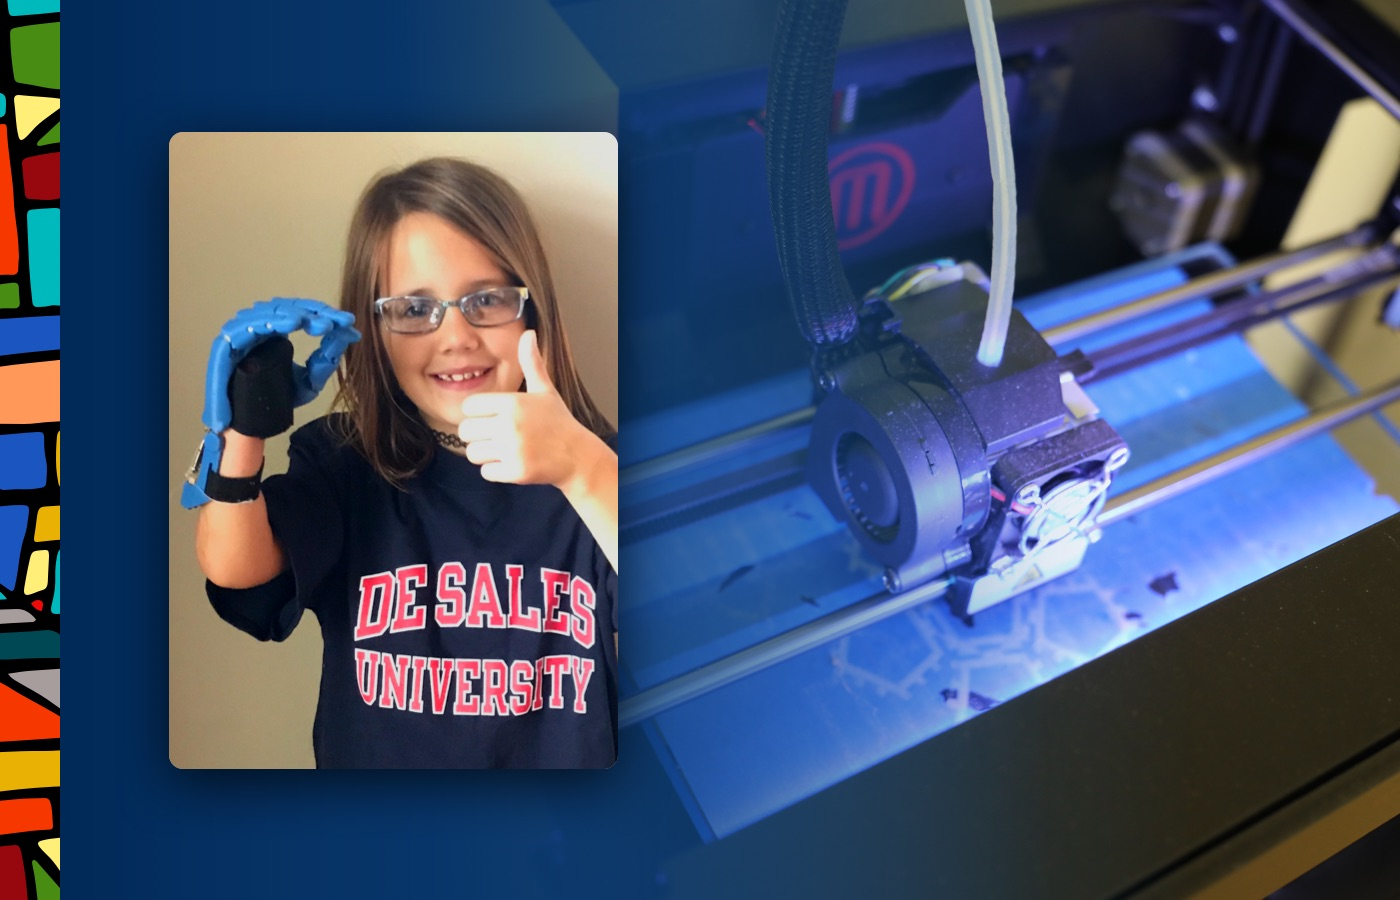 DeSales printed a prosthetic hand for Georgia